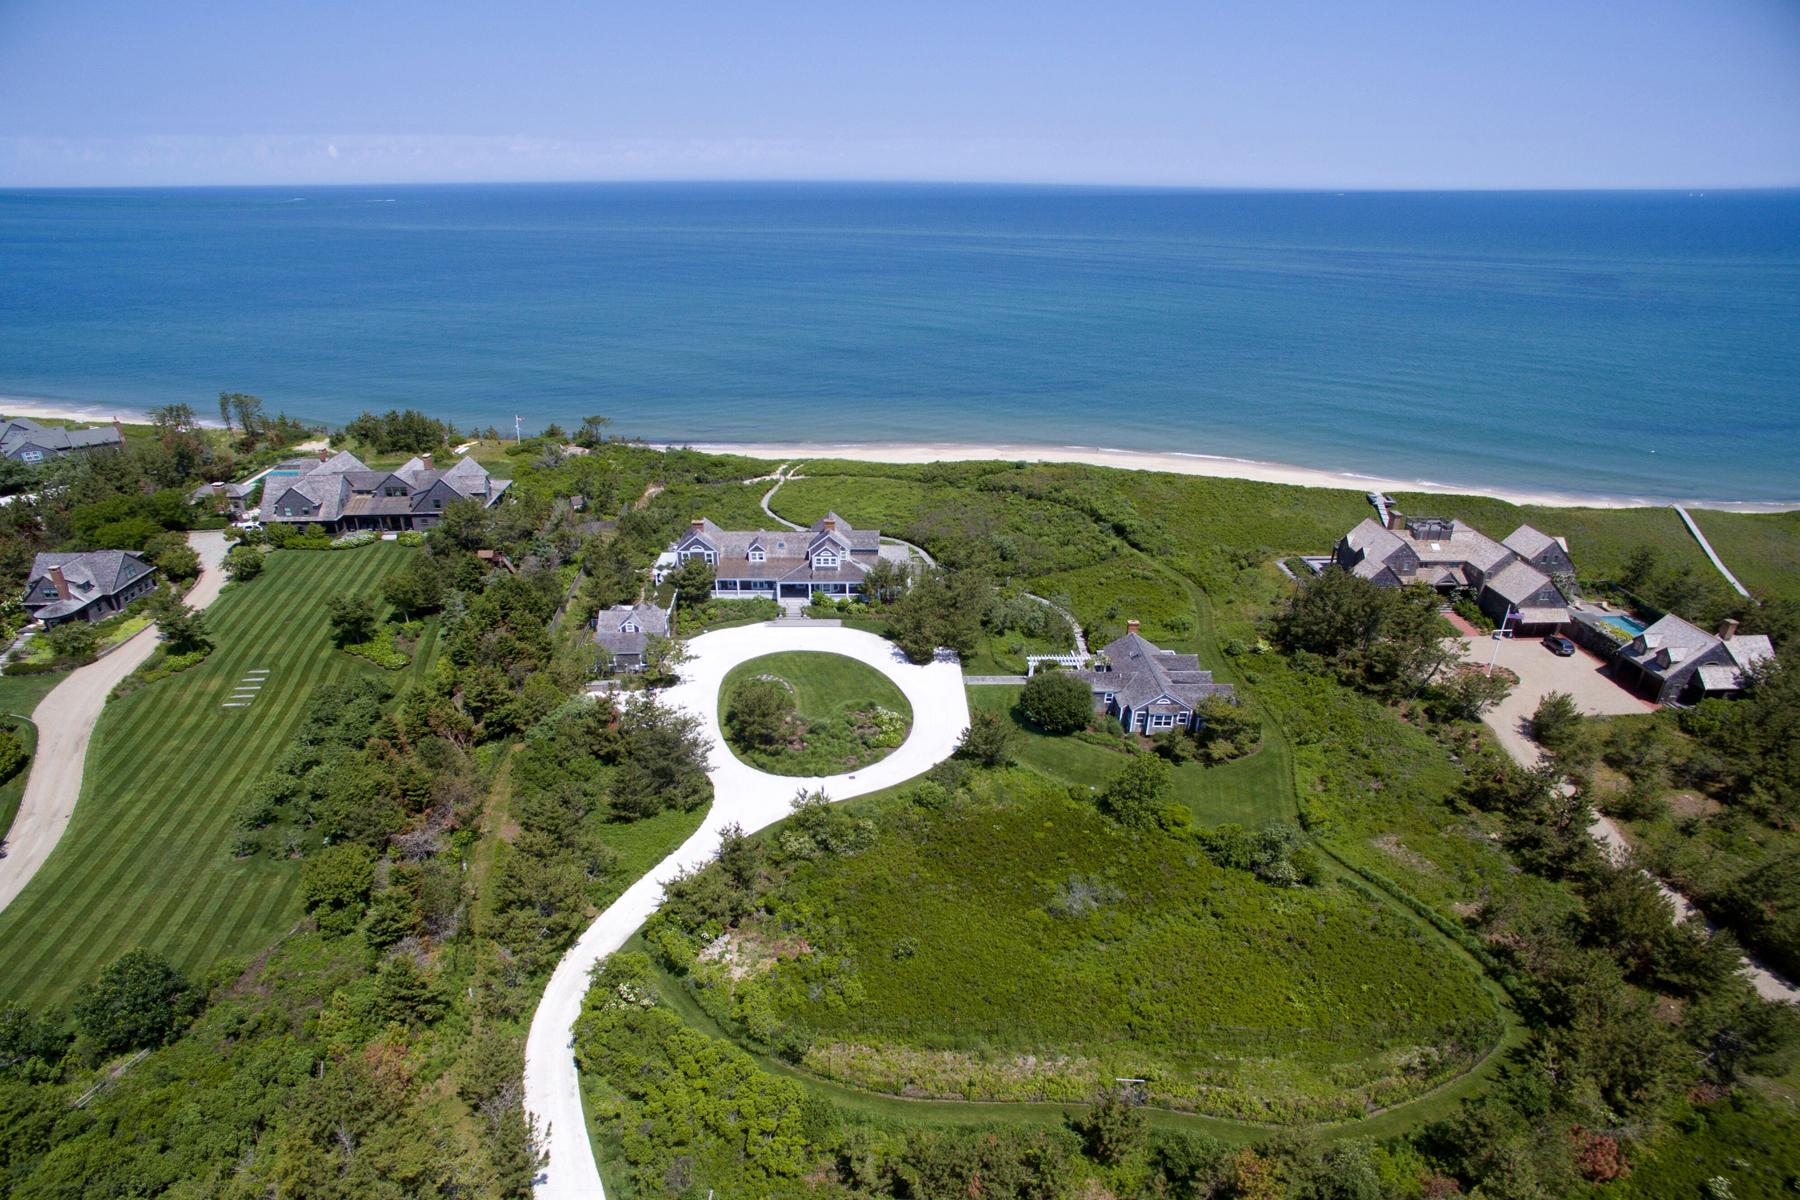 Maison unifamiliale pour l Vente à Spectacular Oceanfront Dionis! 119 Eel Point Road 119 R Eel Point Road Nantucket, Massachusetts, 02554 États-Unis